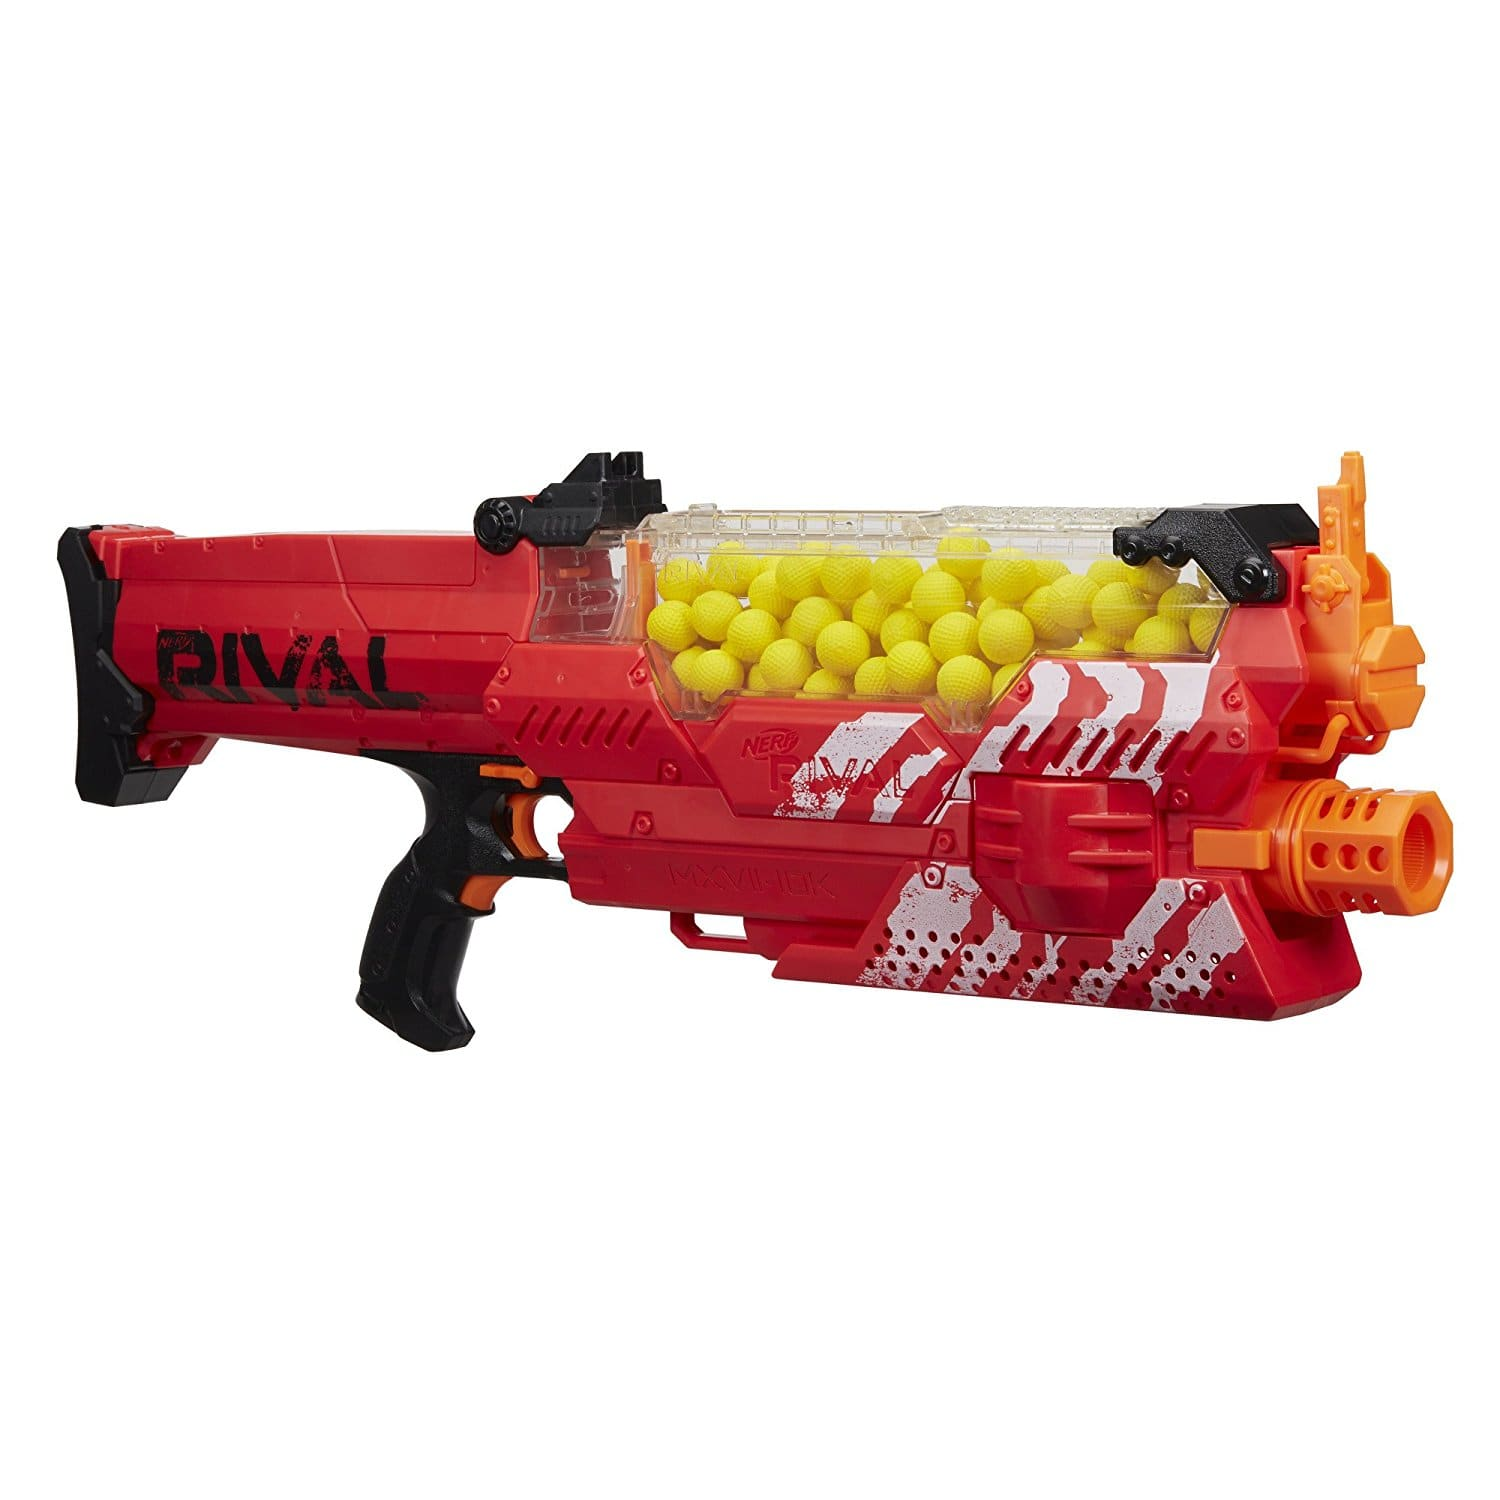 Amazon.com: Nerf N-Strike Elite Quadrant: Toys & Games Nerf blaster